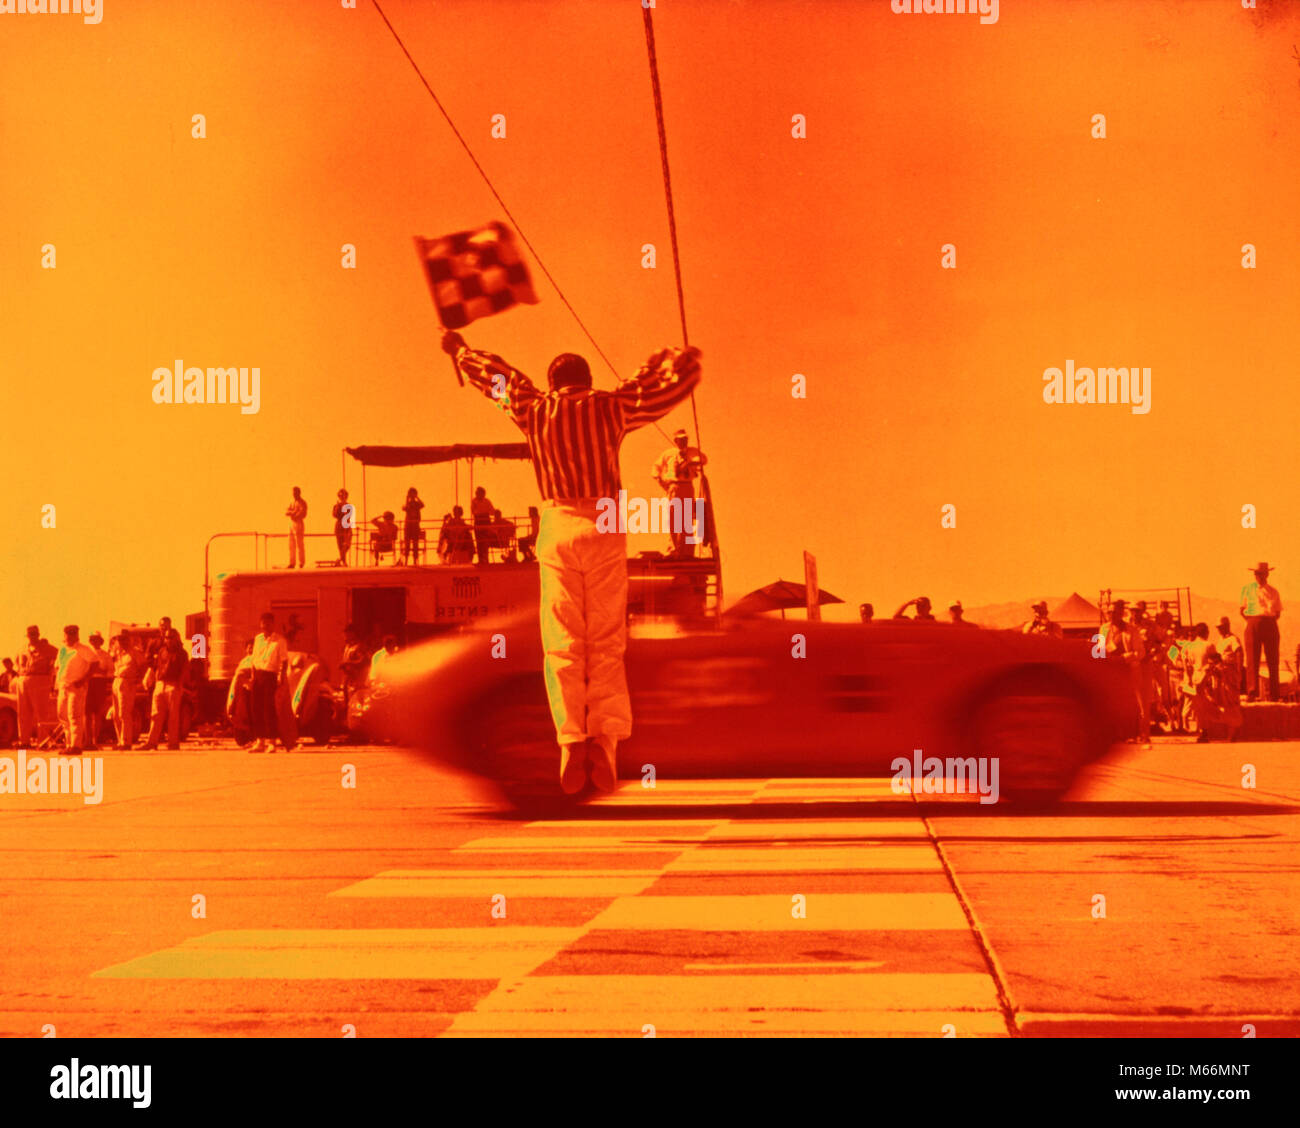 Race Cars Finish Line Stock Photos Pinewood Derby Lamps 1970s Man Waving Checkered Flag At End Of Sports Car Orange Filter